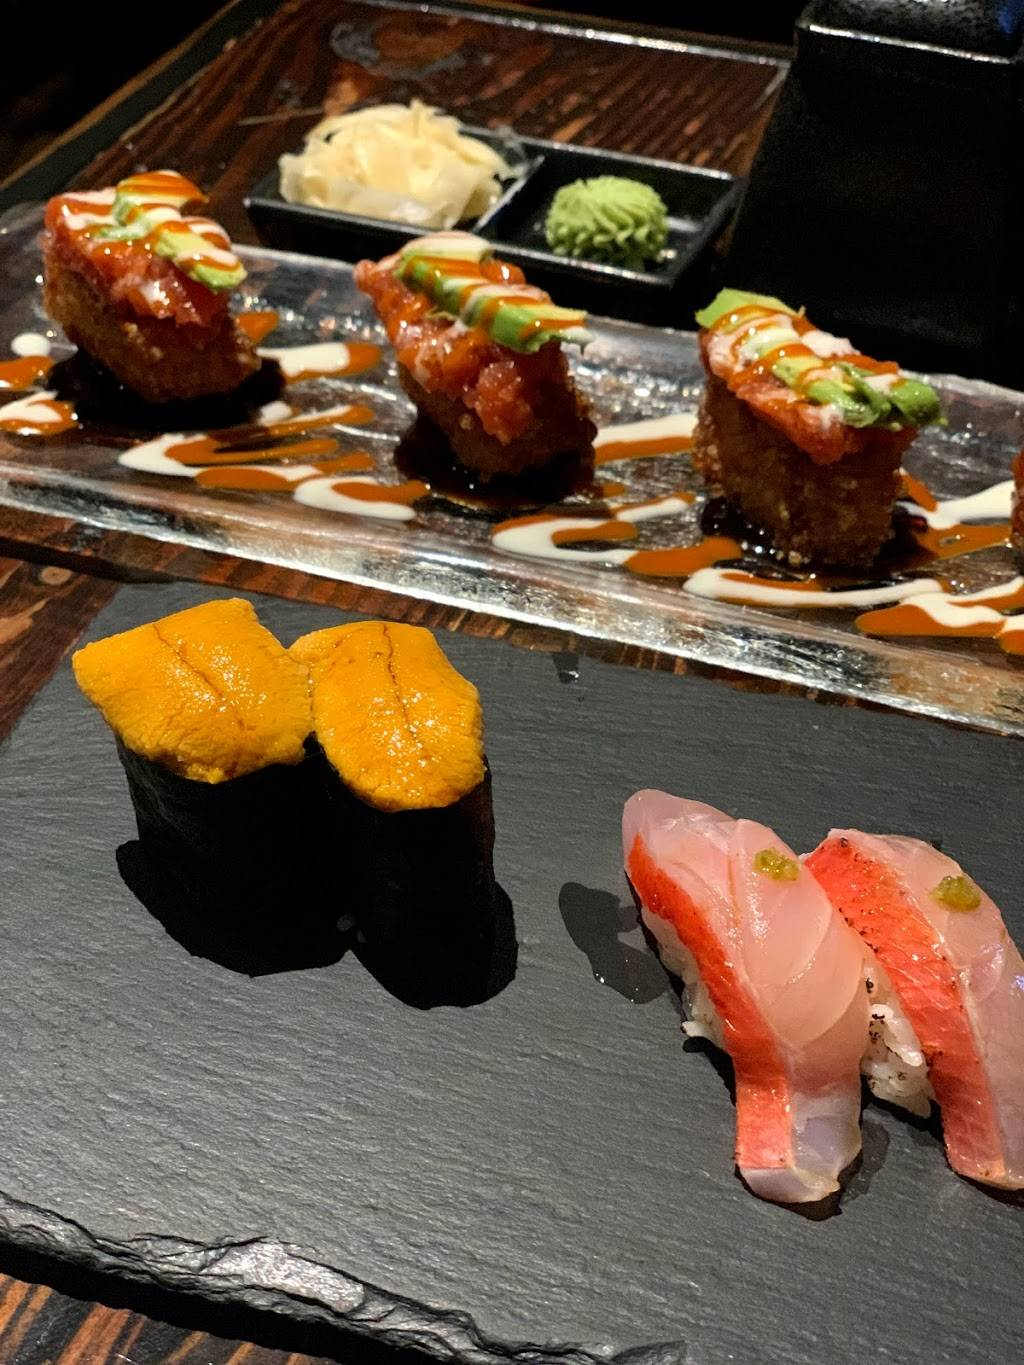 Sushi One | restaurant | 3905 W 6th St, Los Angeles, CA 90020, USA | 2139085082 OR +1 213-908-5082